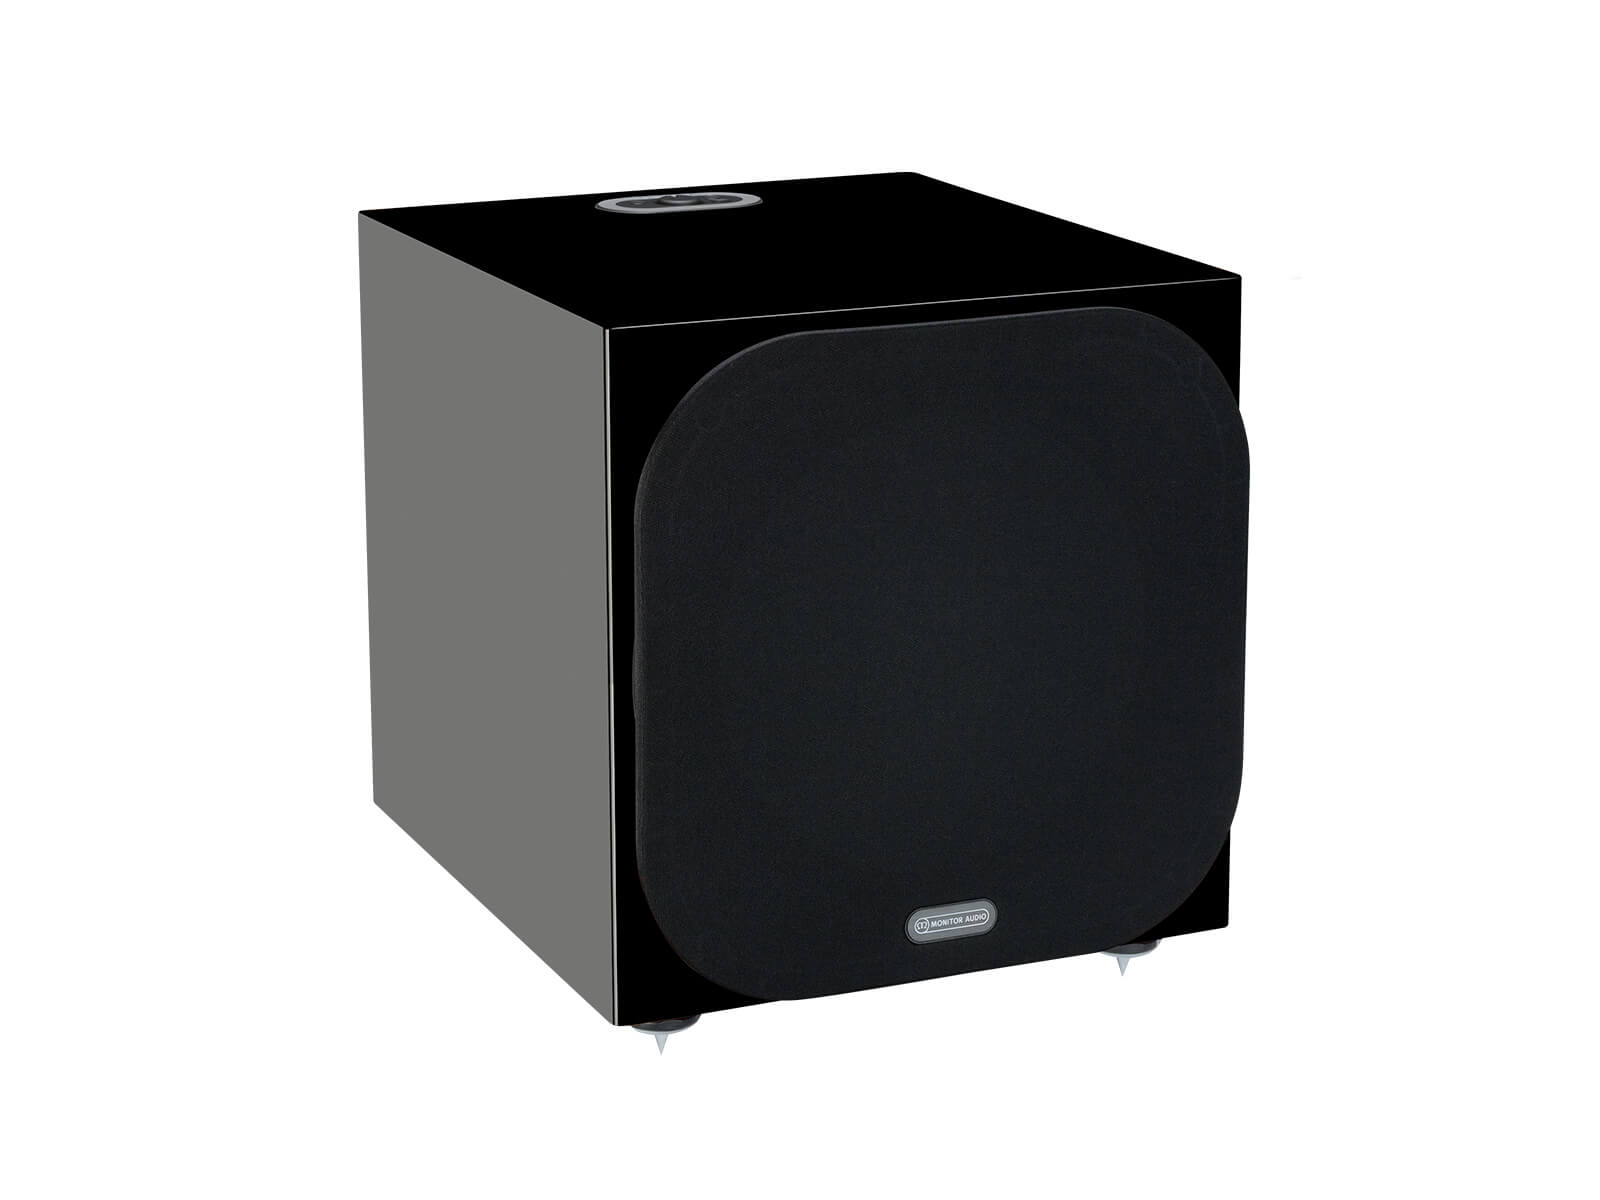 Silver W-12 subwoofer, featuring a grille and a high black gloss finish.